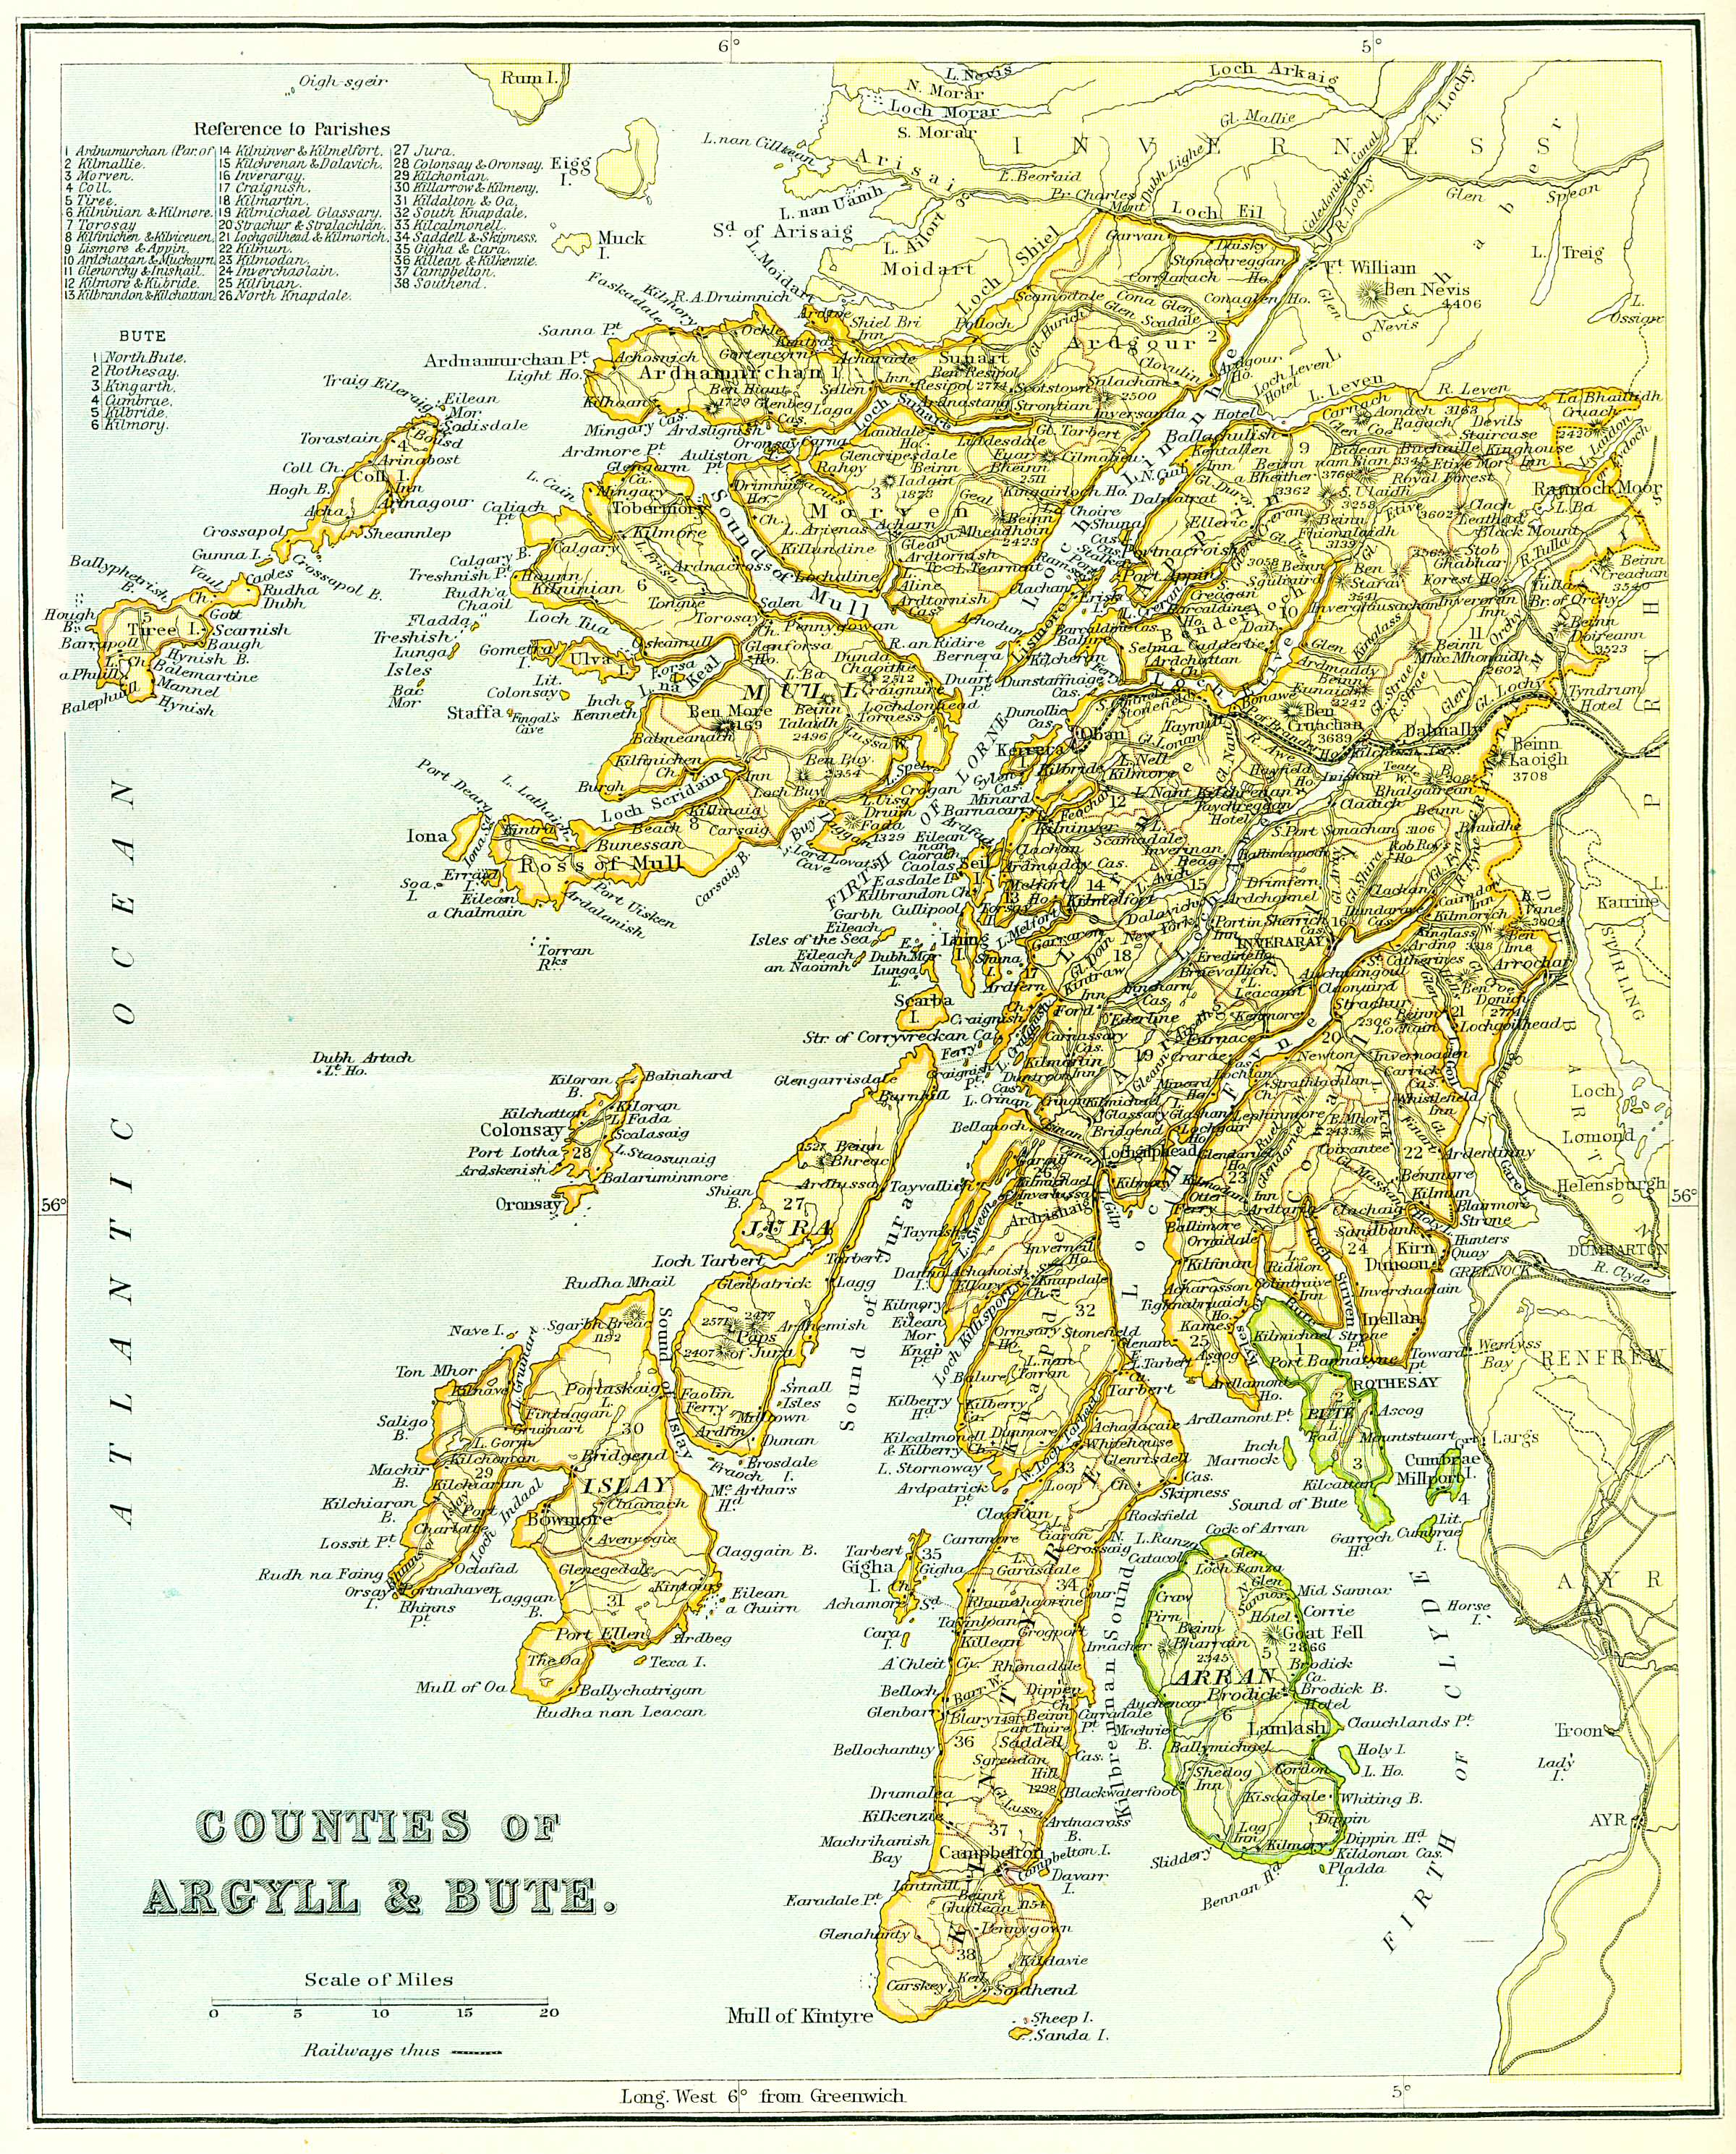 Map Of Argyll And Bute Ordnance Gazetteer of Scotland   Counties of Argyll & Bute Map